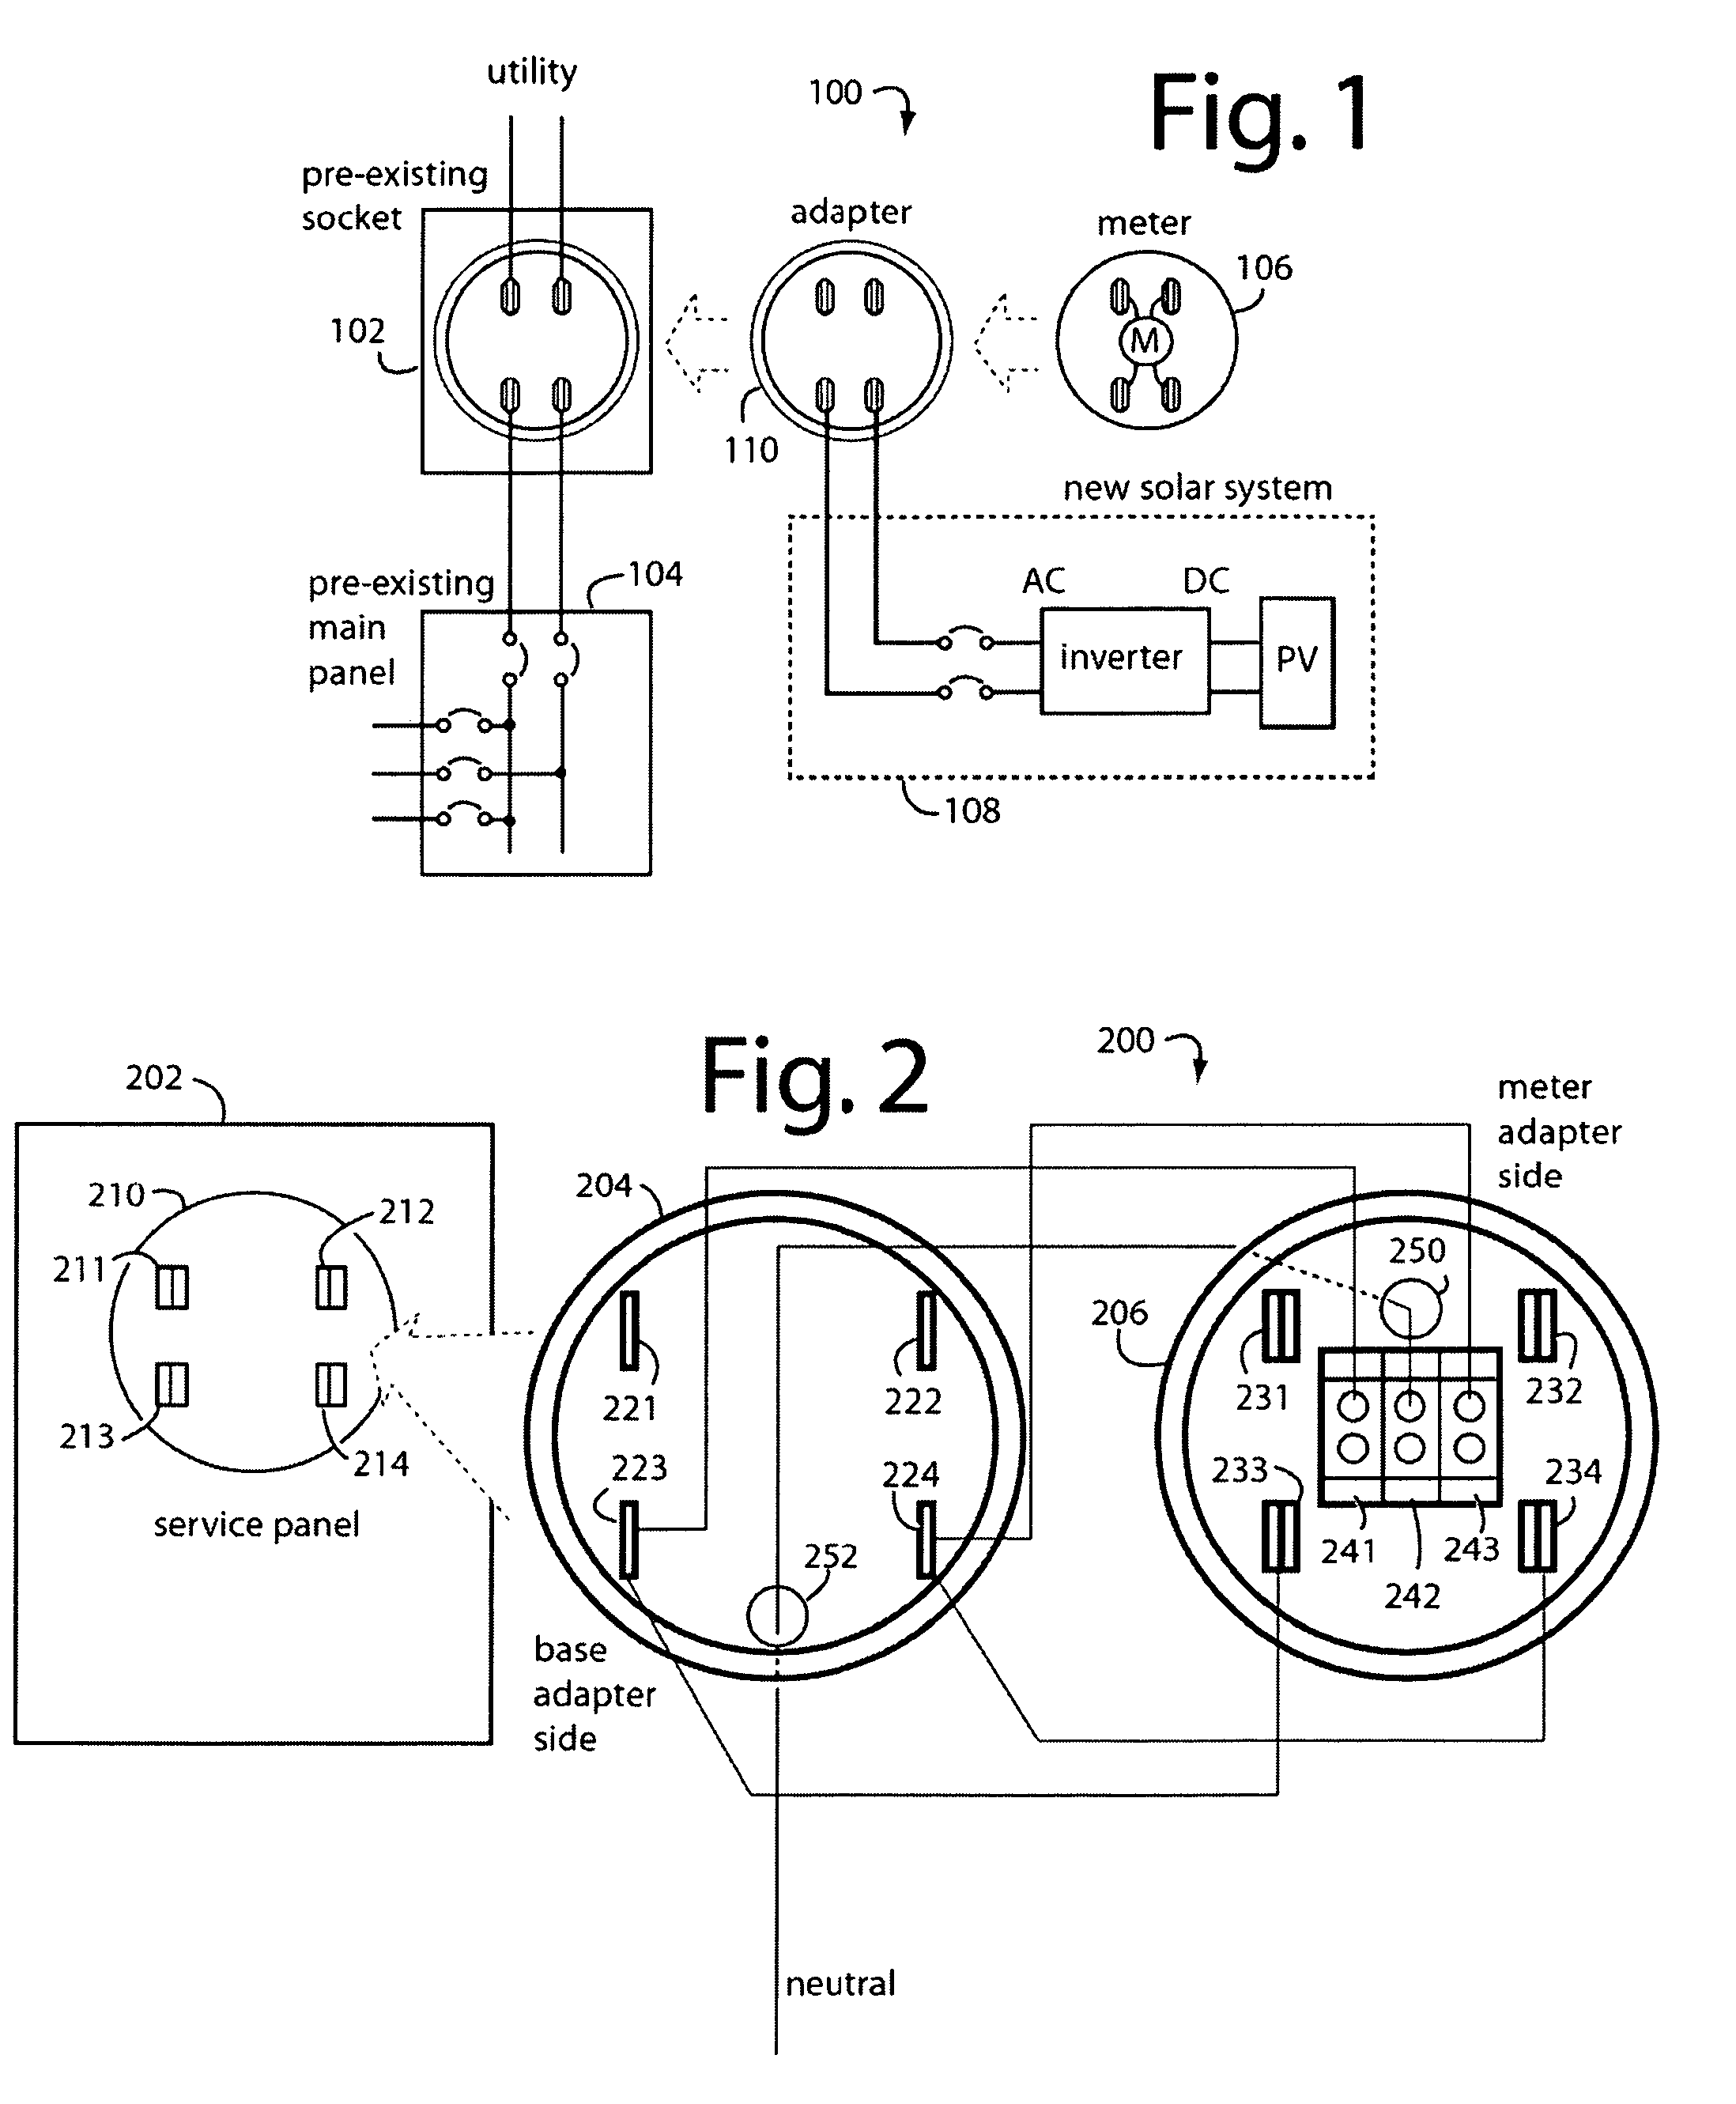 US07648389 20100119 D00001 patent us7648389 supply side backfeed meter socket adapter 10 point meter pan wiring diagram at bayanpartner.co